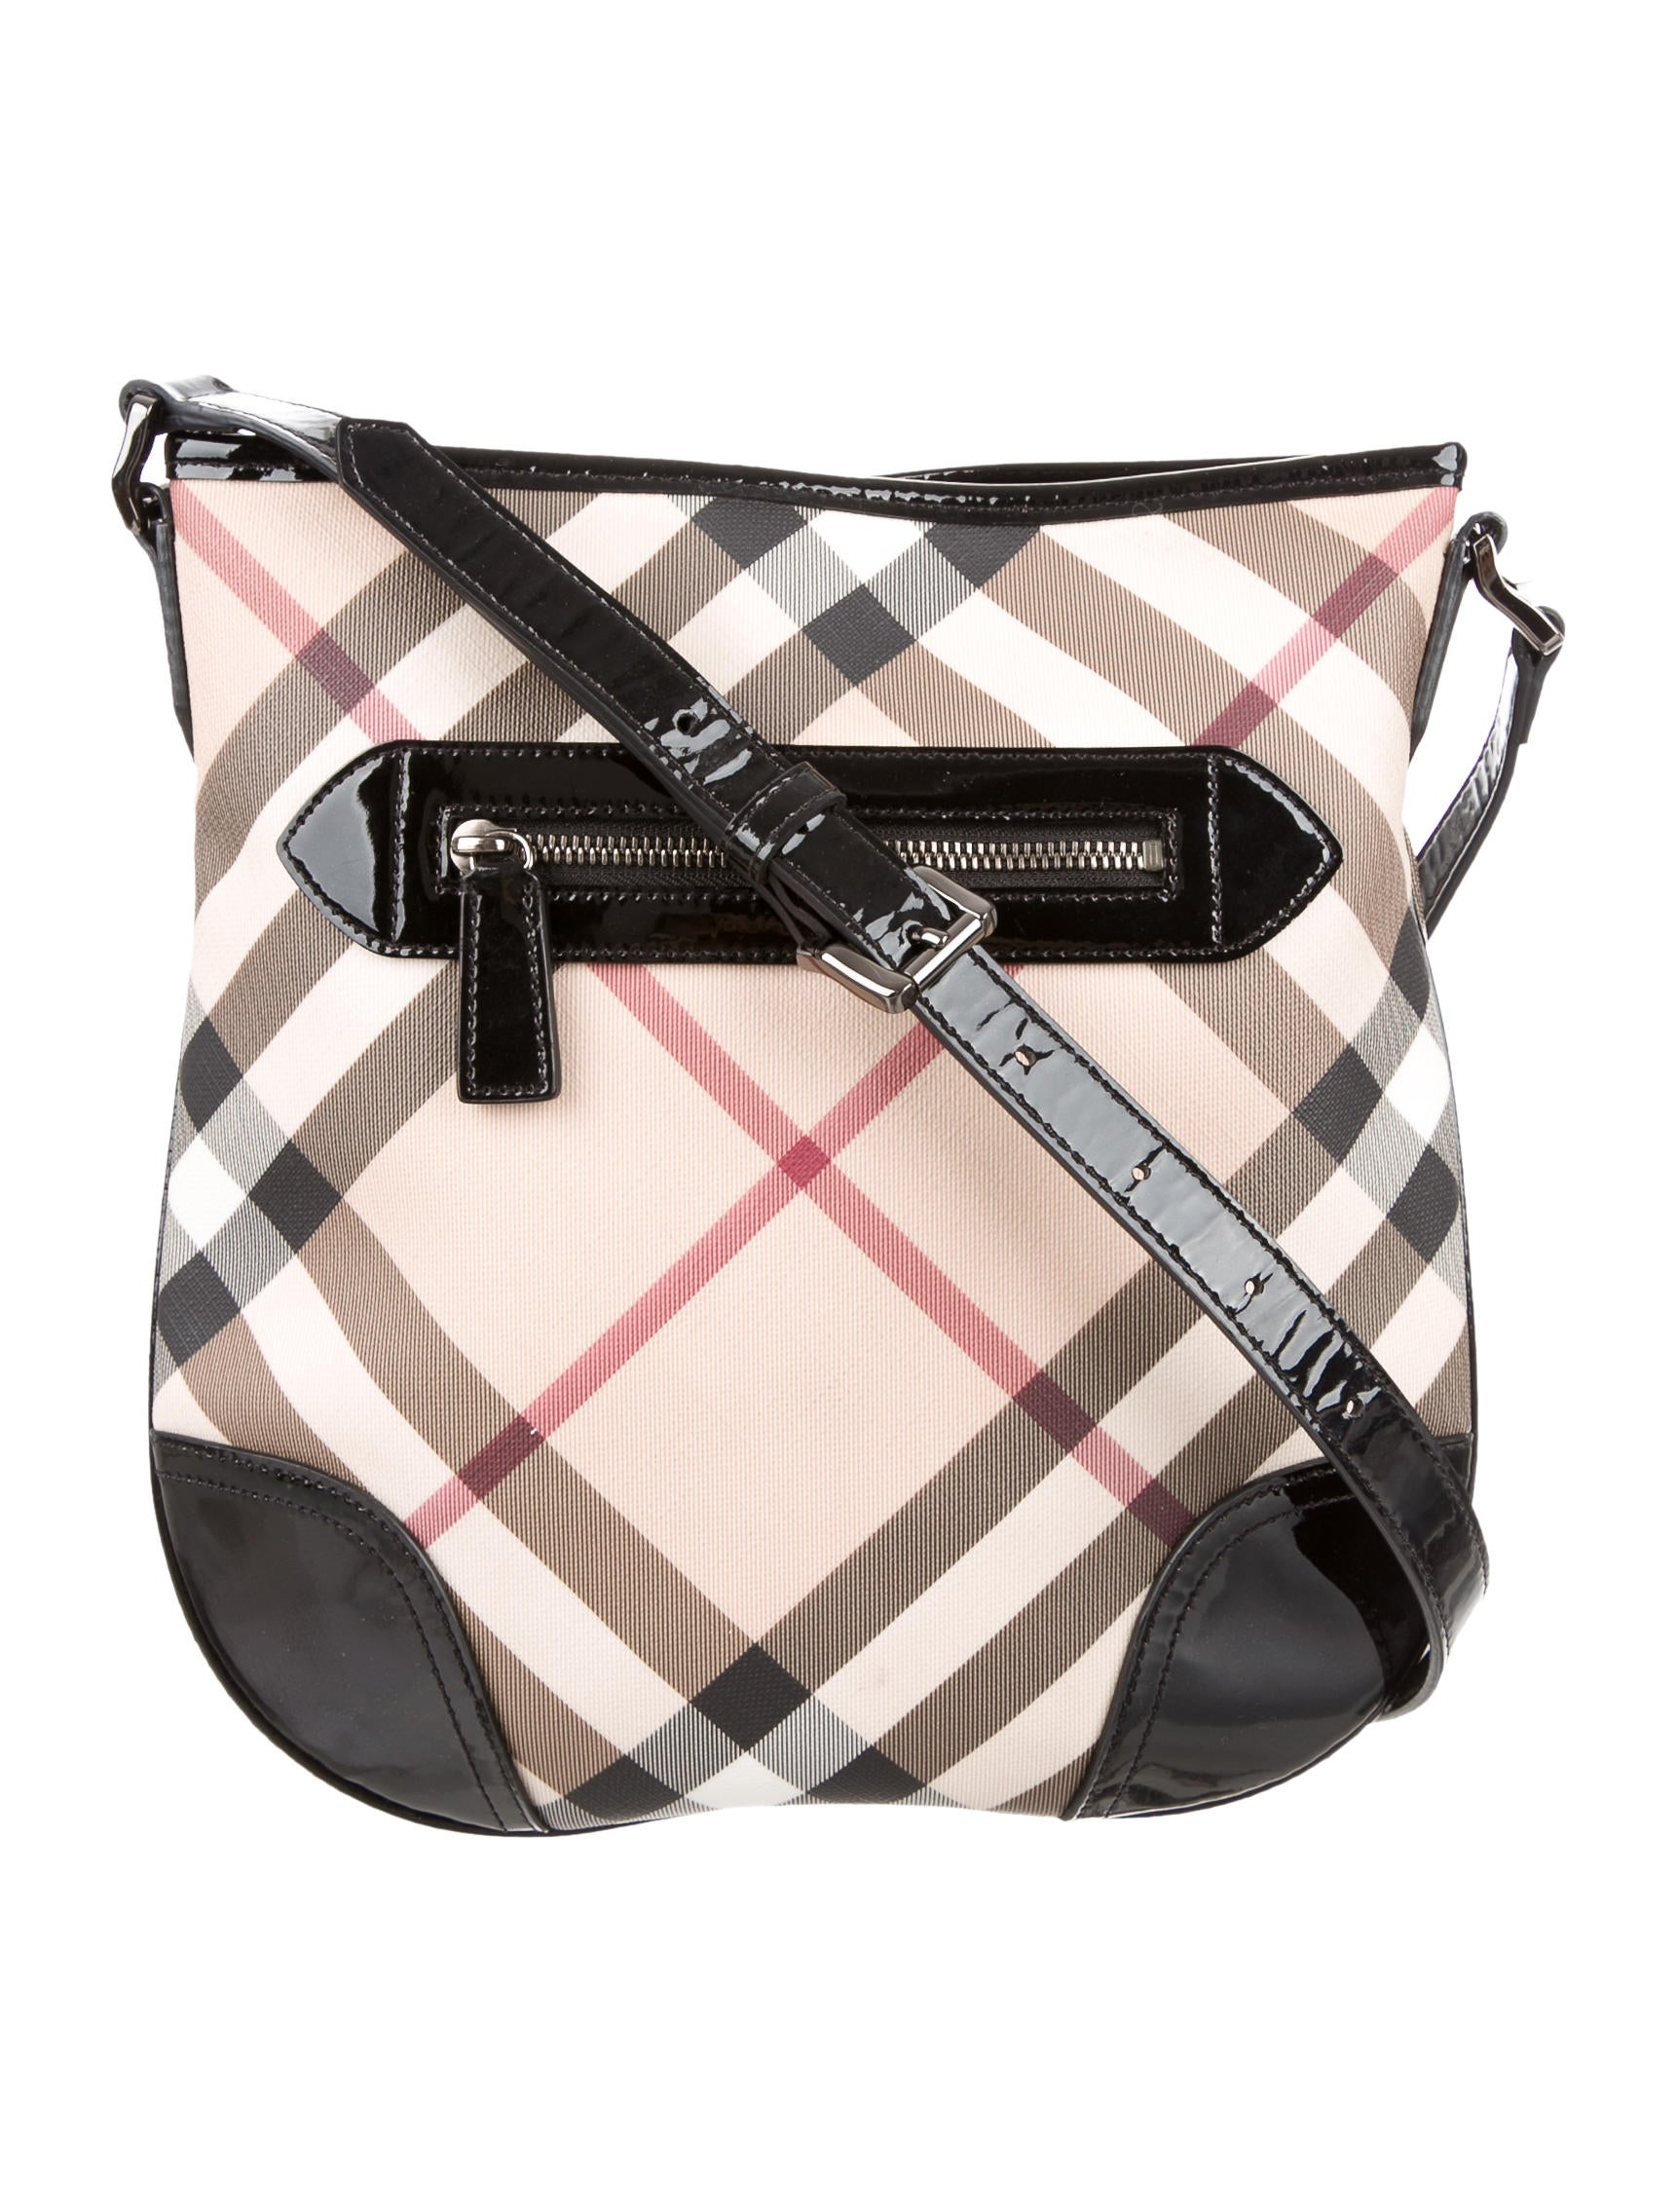 a36e19e5612 Burberry Dryden Nova Check Crossbody Bag - Handbags - BUR70468 | The ...